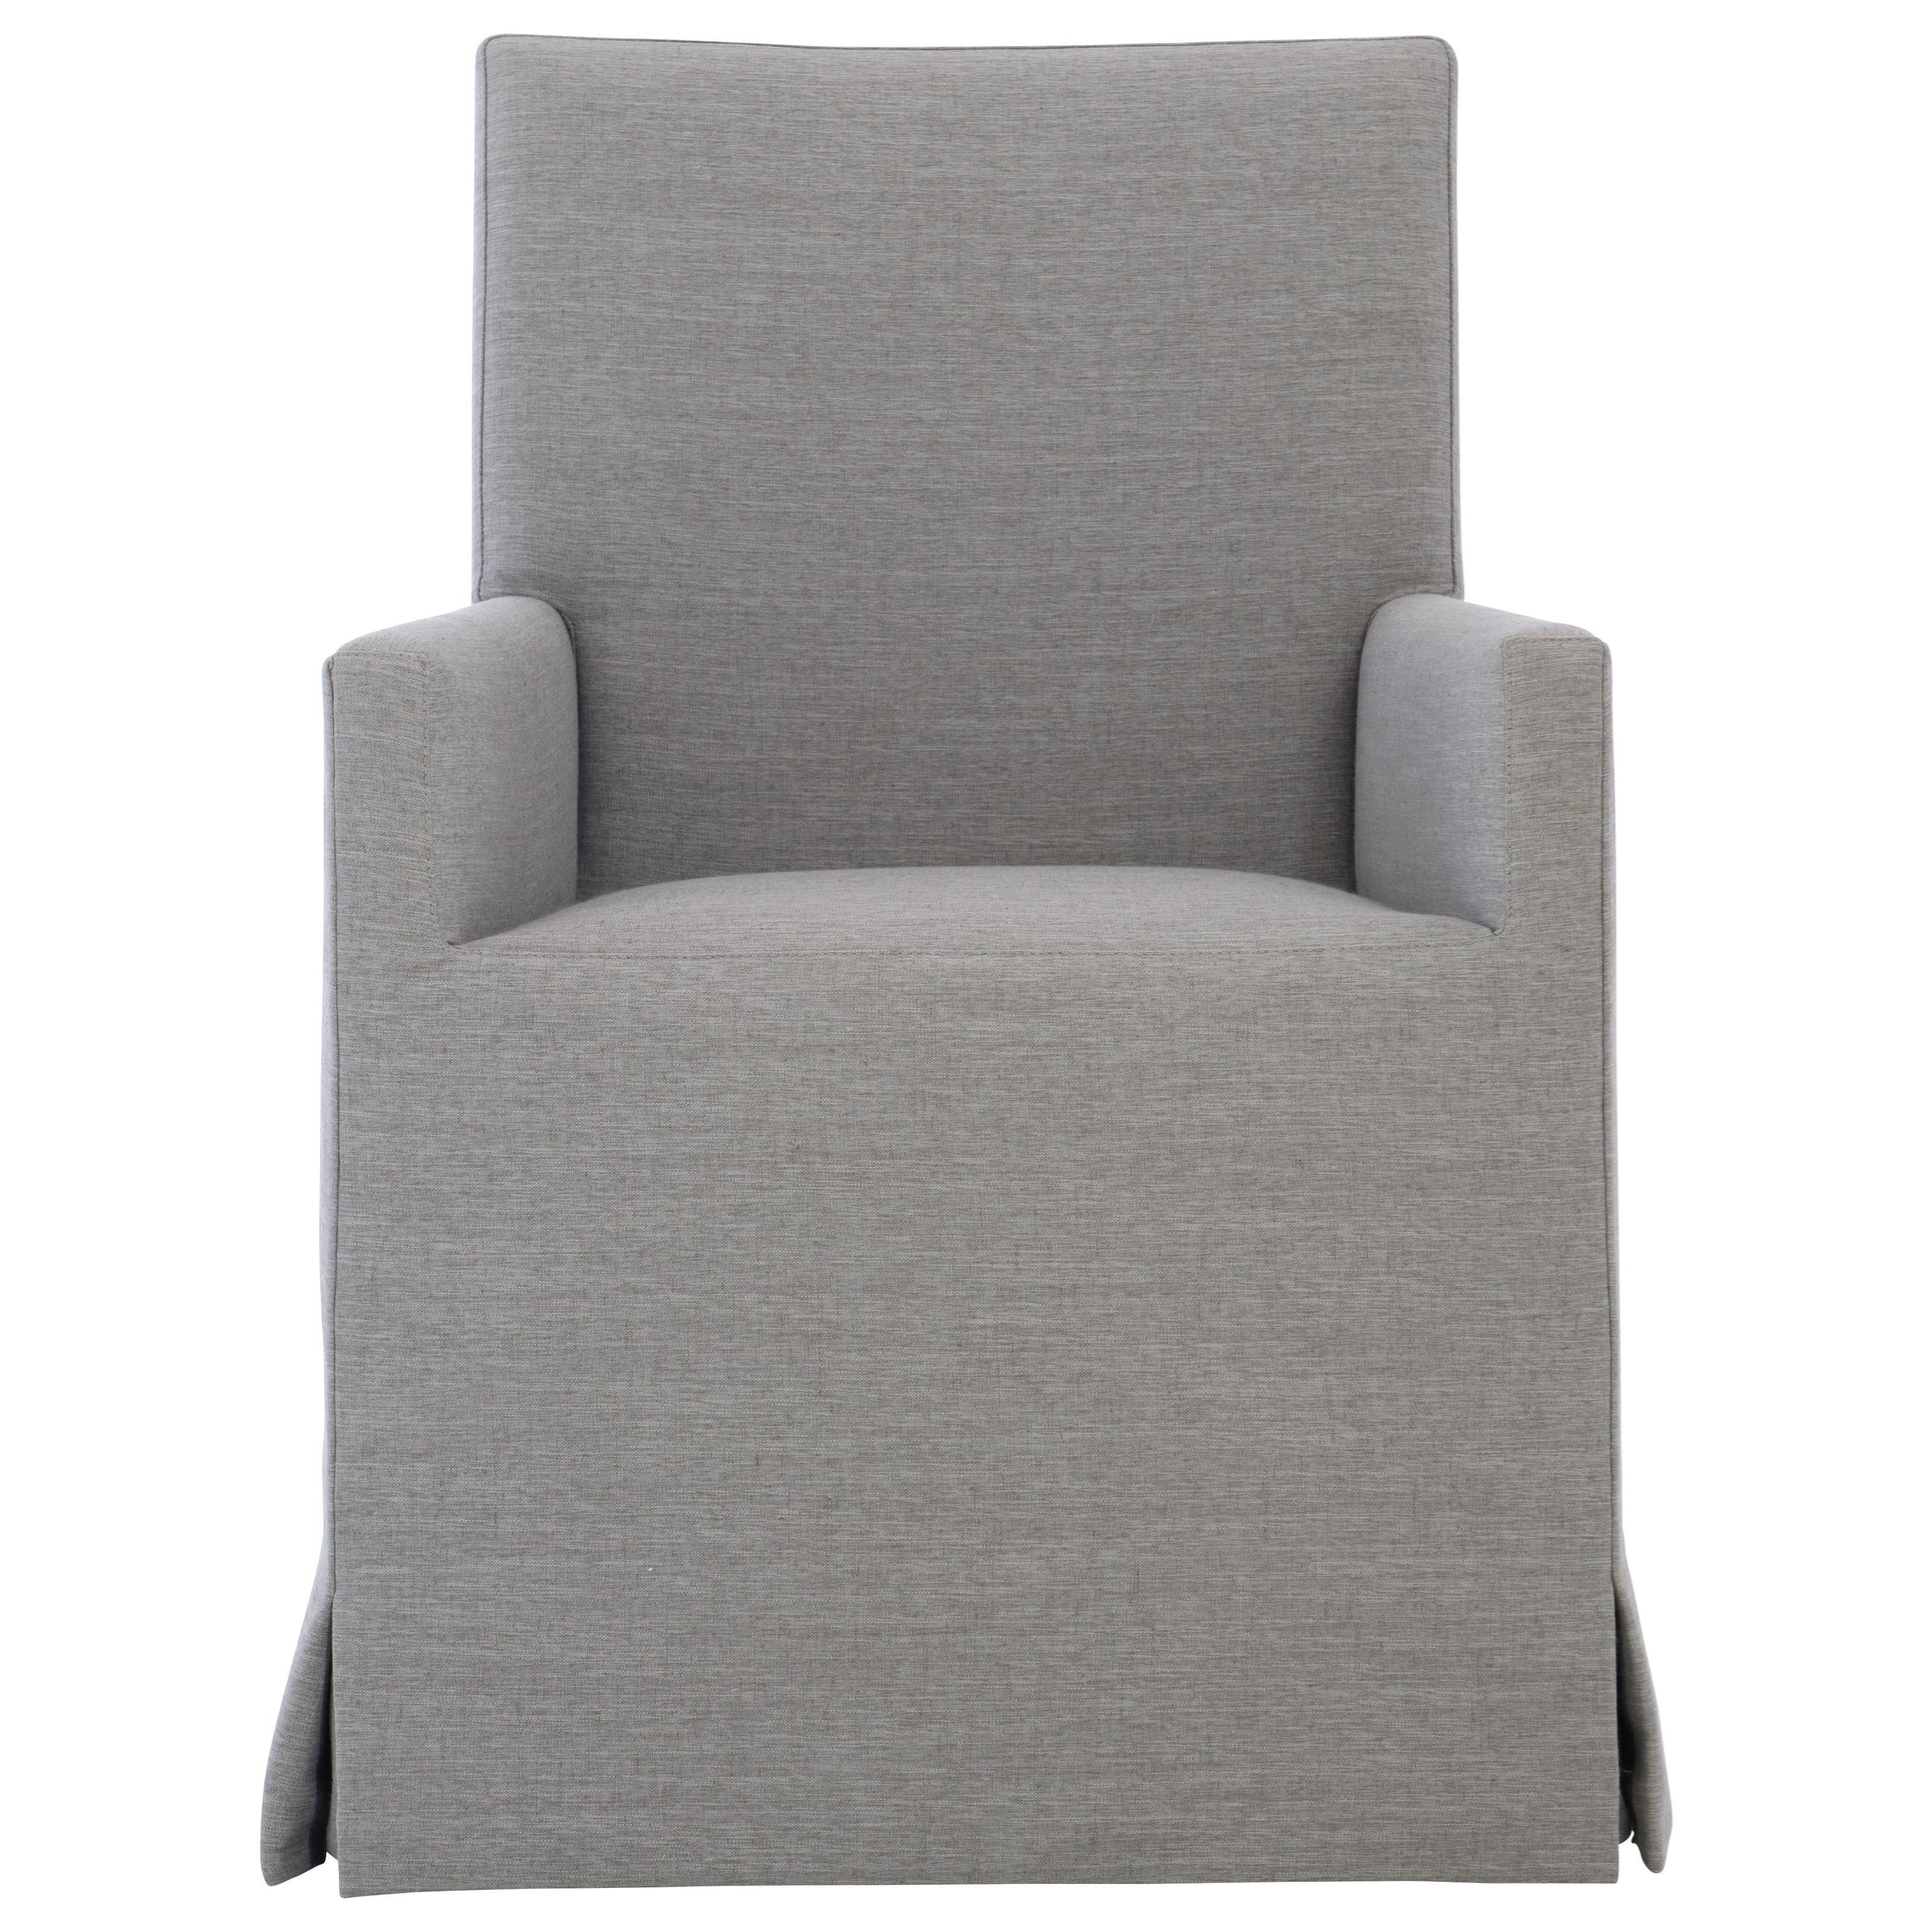 Mirabelle Arm Chair by Bernhardt at Baer's Furniture